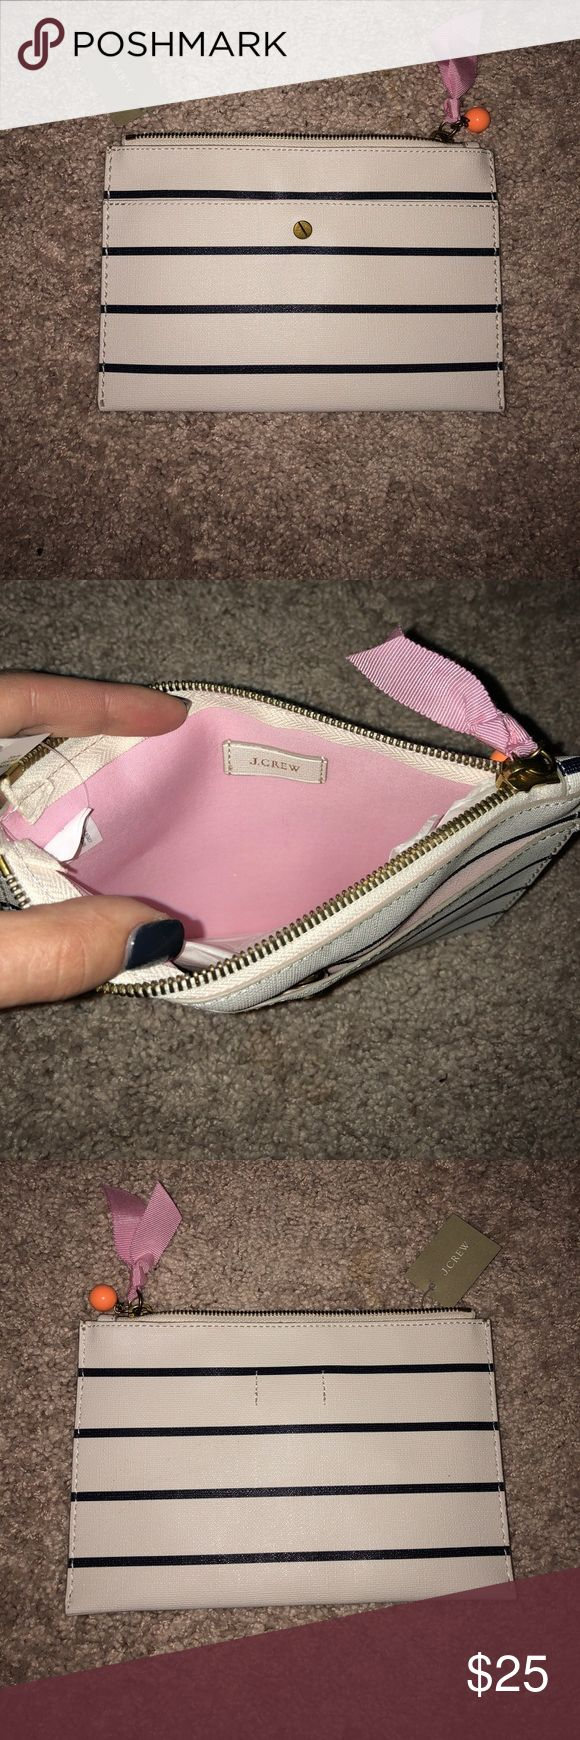 NWT Jcrew clutch New with tags, never used, jcrew clutch. Beige/cream with navy stripes with cute pink ribbon and orange detail on zipper. Holds an iPhone 8, small wallet, lipstick. J. Crew Bags Clutches & Wristlets